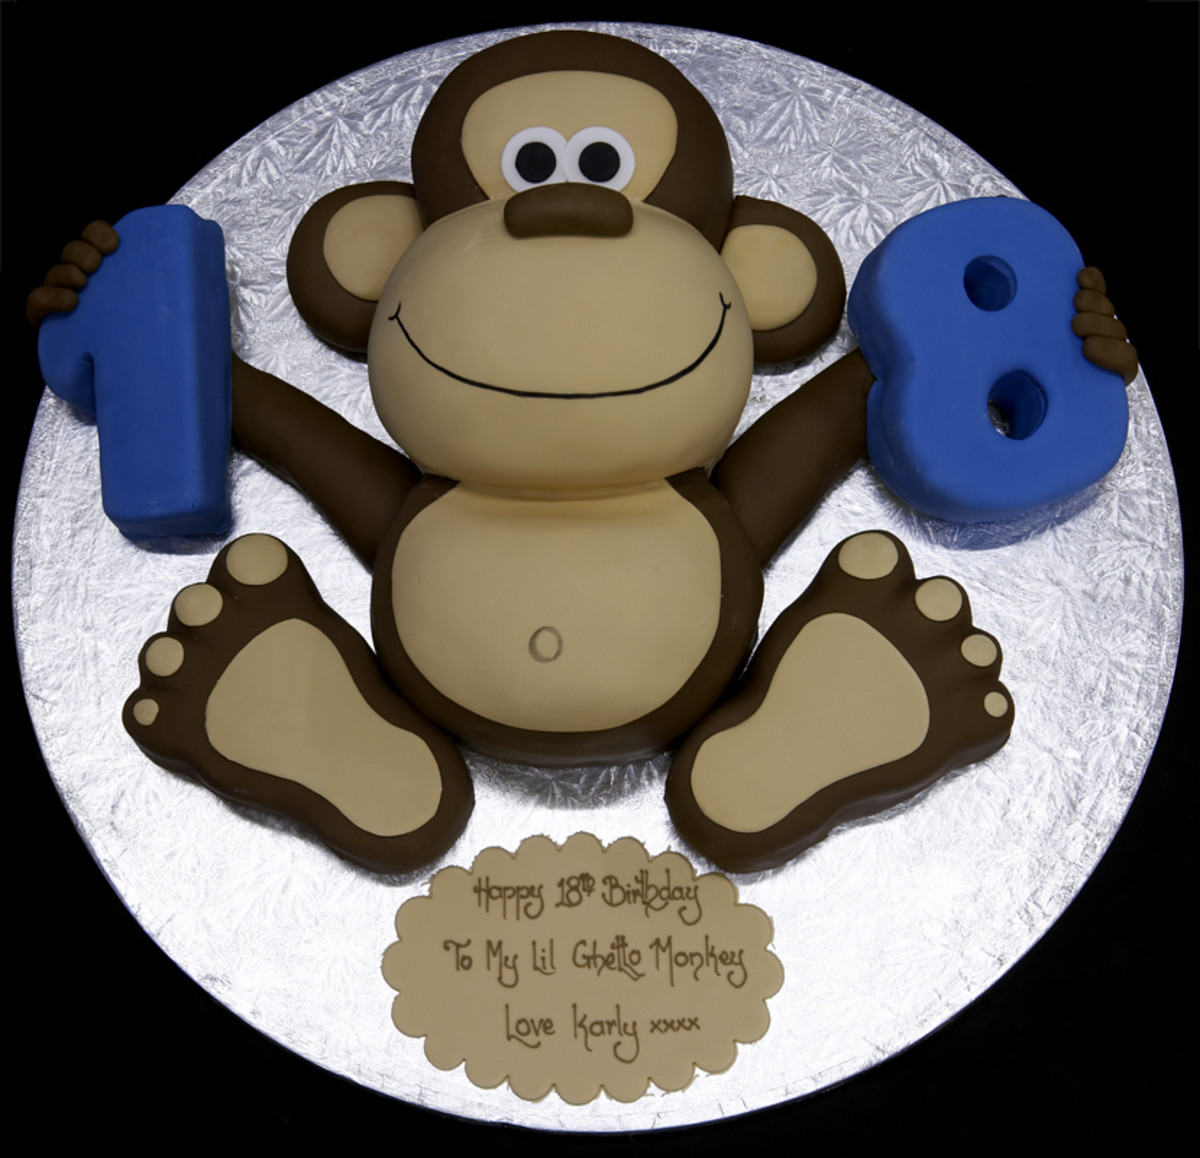 pictures of cakes for birthday. Curious George Birthday Cake: